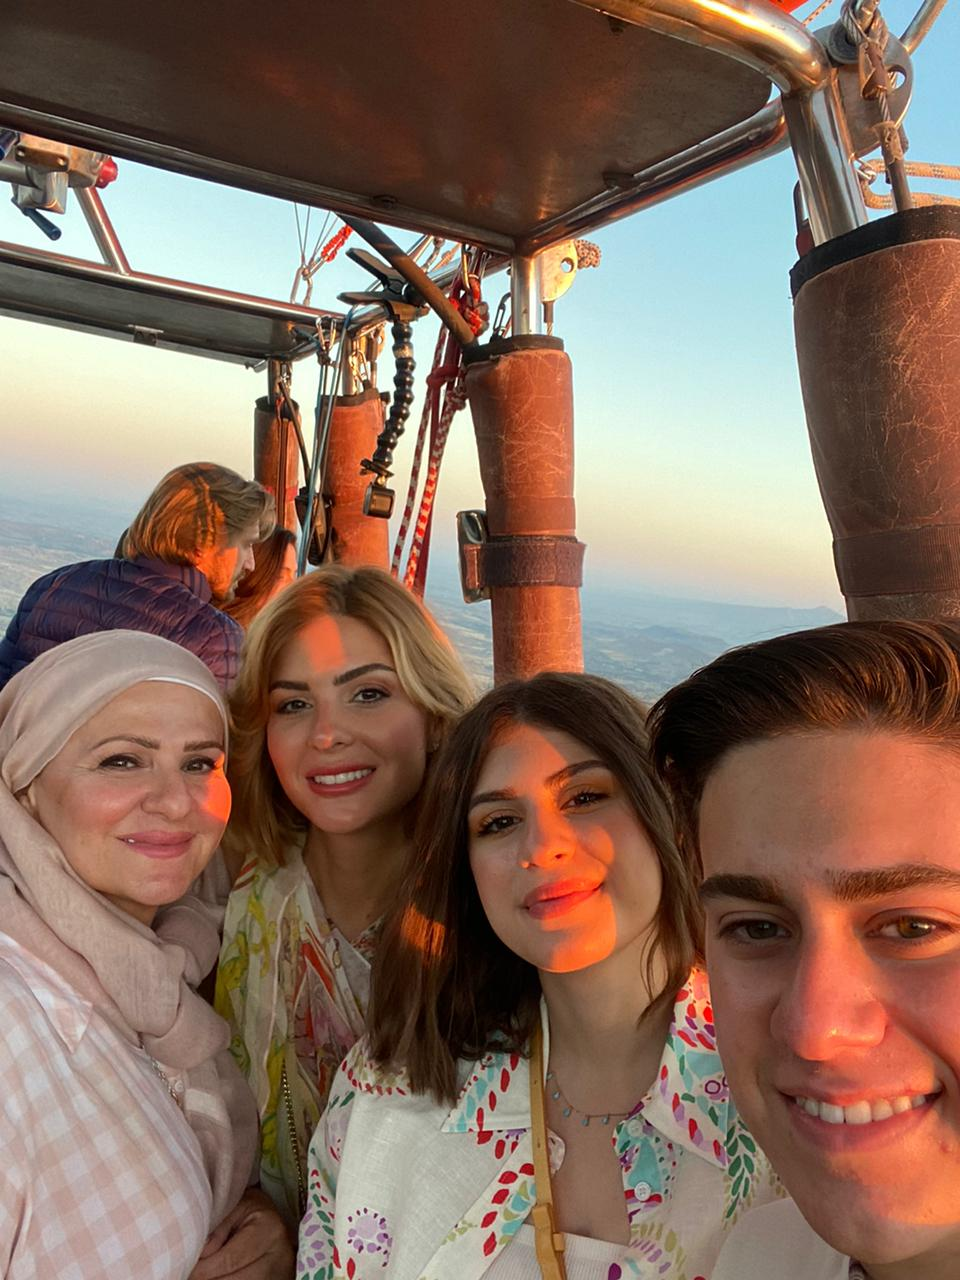 """Ahmad and Joudi take a quick photo with their mother and older sister, Leena, during the hot air balloon ride. Leena lives in Dubai where she works as an Instagram influencer, and this was their first time seeing her in almost three years. """"I was shocked to see her because I hadn't seen her in so long. When we saw each other, we both kind of ran towards one another,"""" Joudi said. """"She was in Cappadocia for the [music] festival because [a brand] reached out and invited her so that she can post about it."""""""